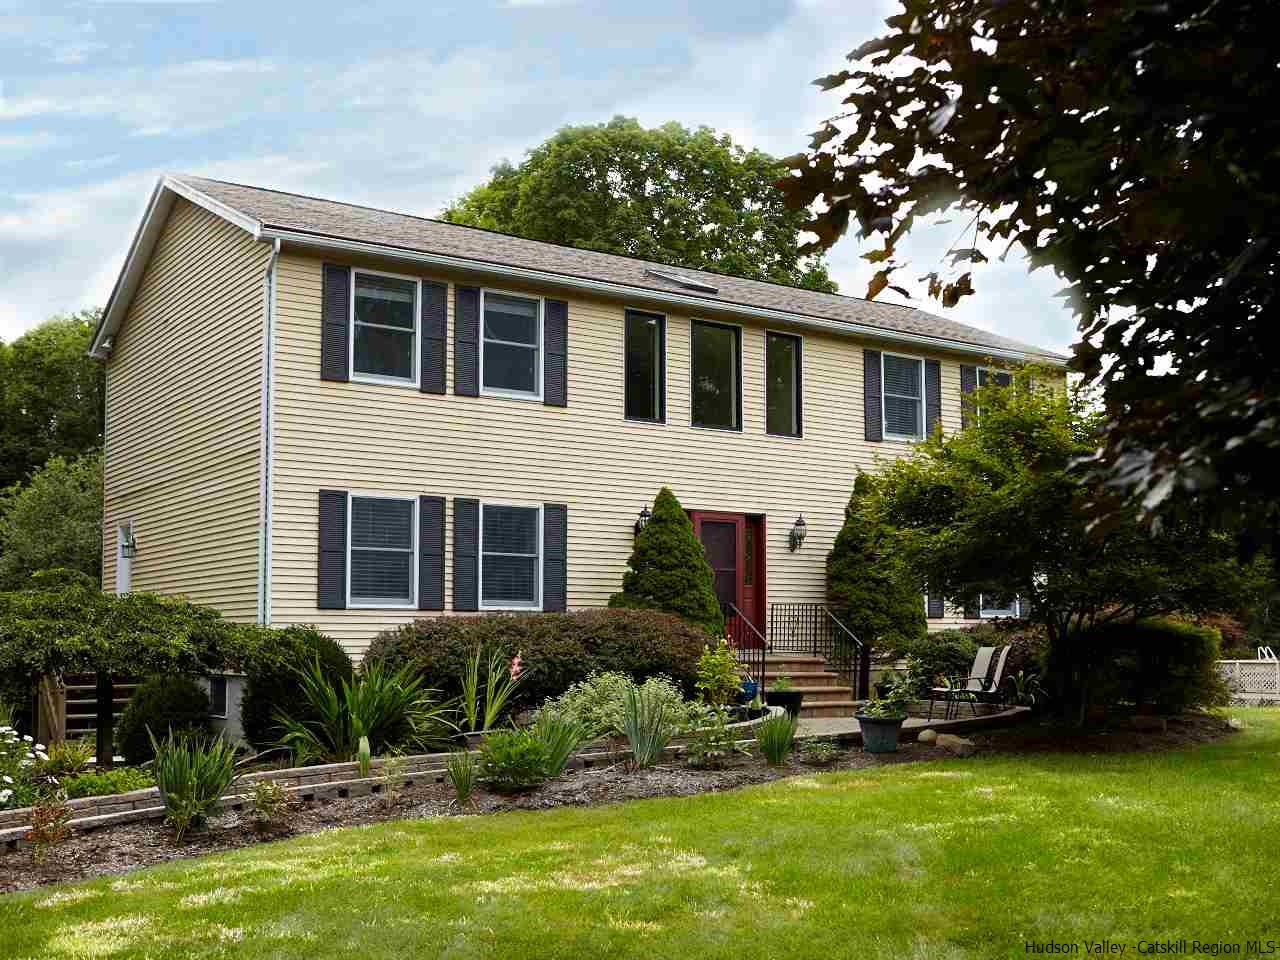 Single Family Home for Sale at 1300 Old Post Road 1300 Old Post Road Ulster Park, New York 12487 United States